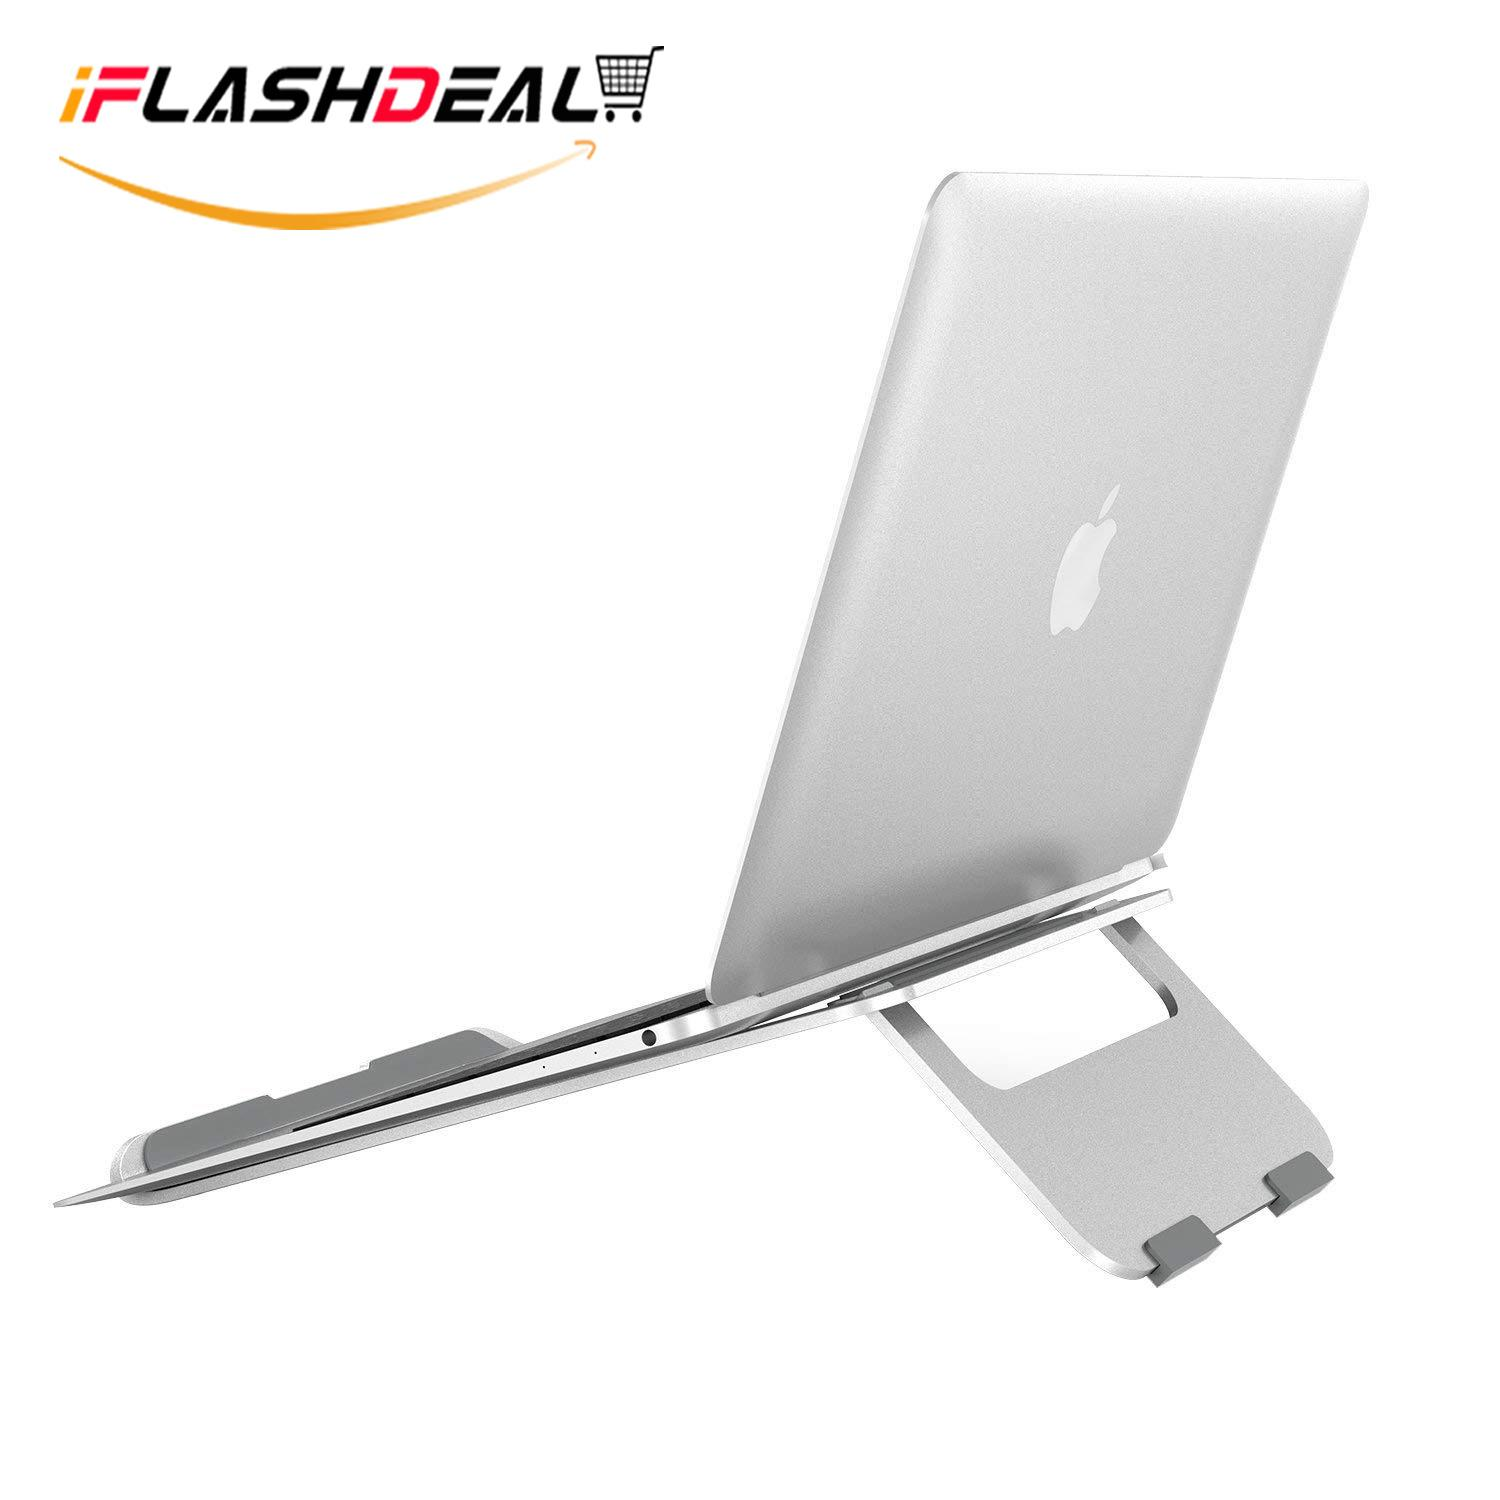 iFlashDeal Laptop Stand, Laptop Notebook Stand, Portable Laptop Stand, Aluminum Cooling Notebook Computer Stand, Aluminum Ergonomic Laptop Riser (Silver)